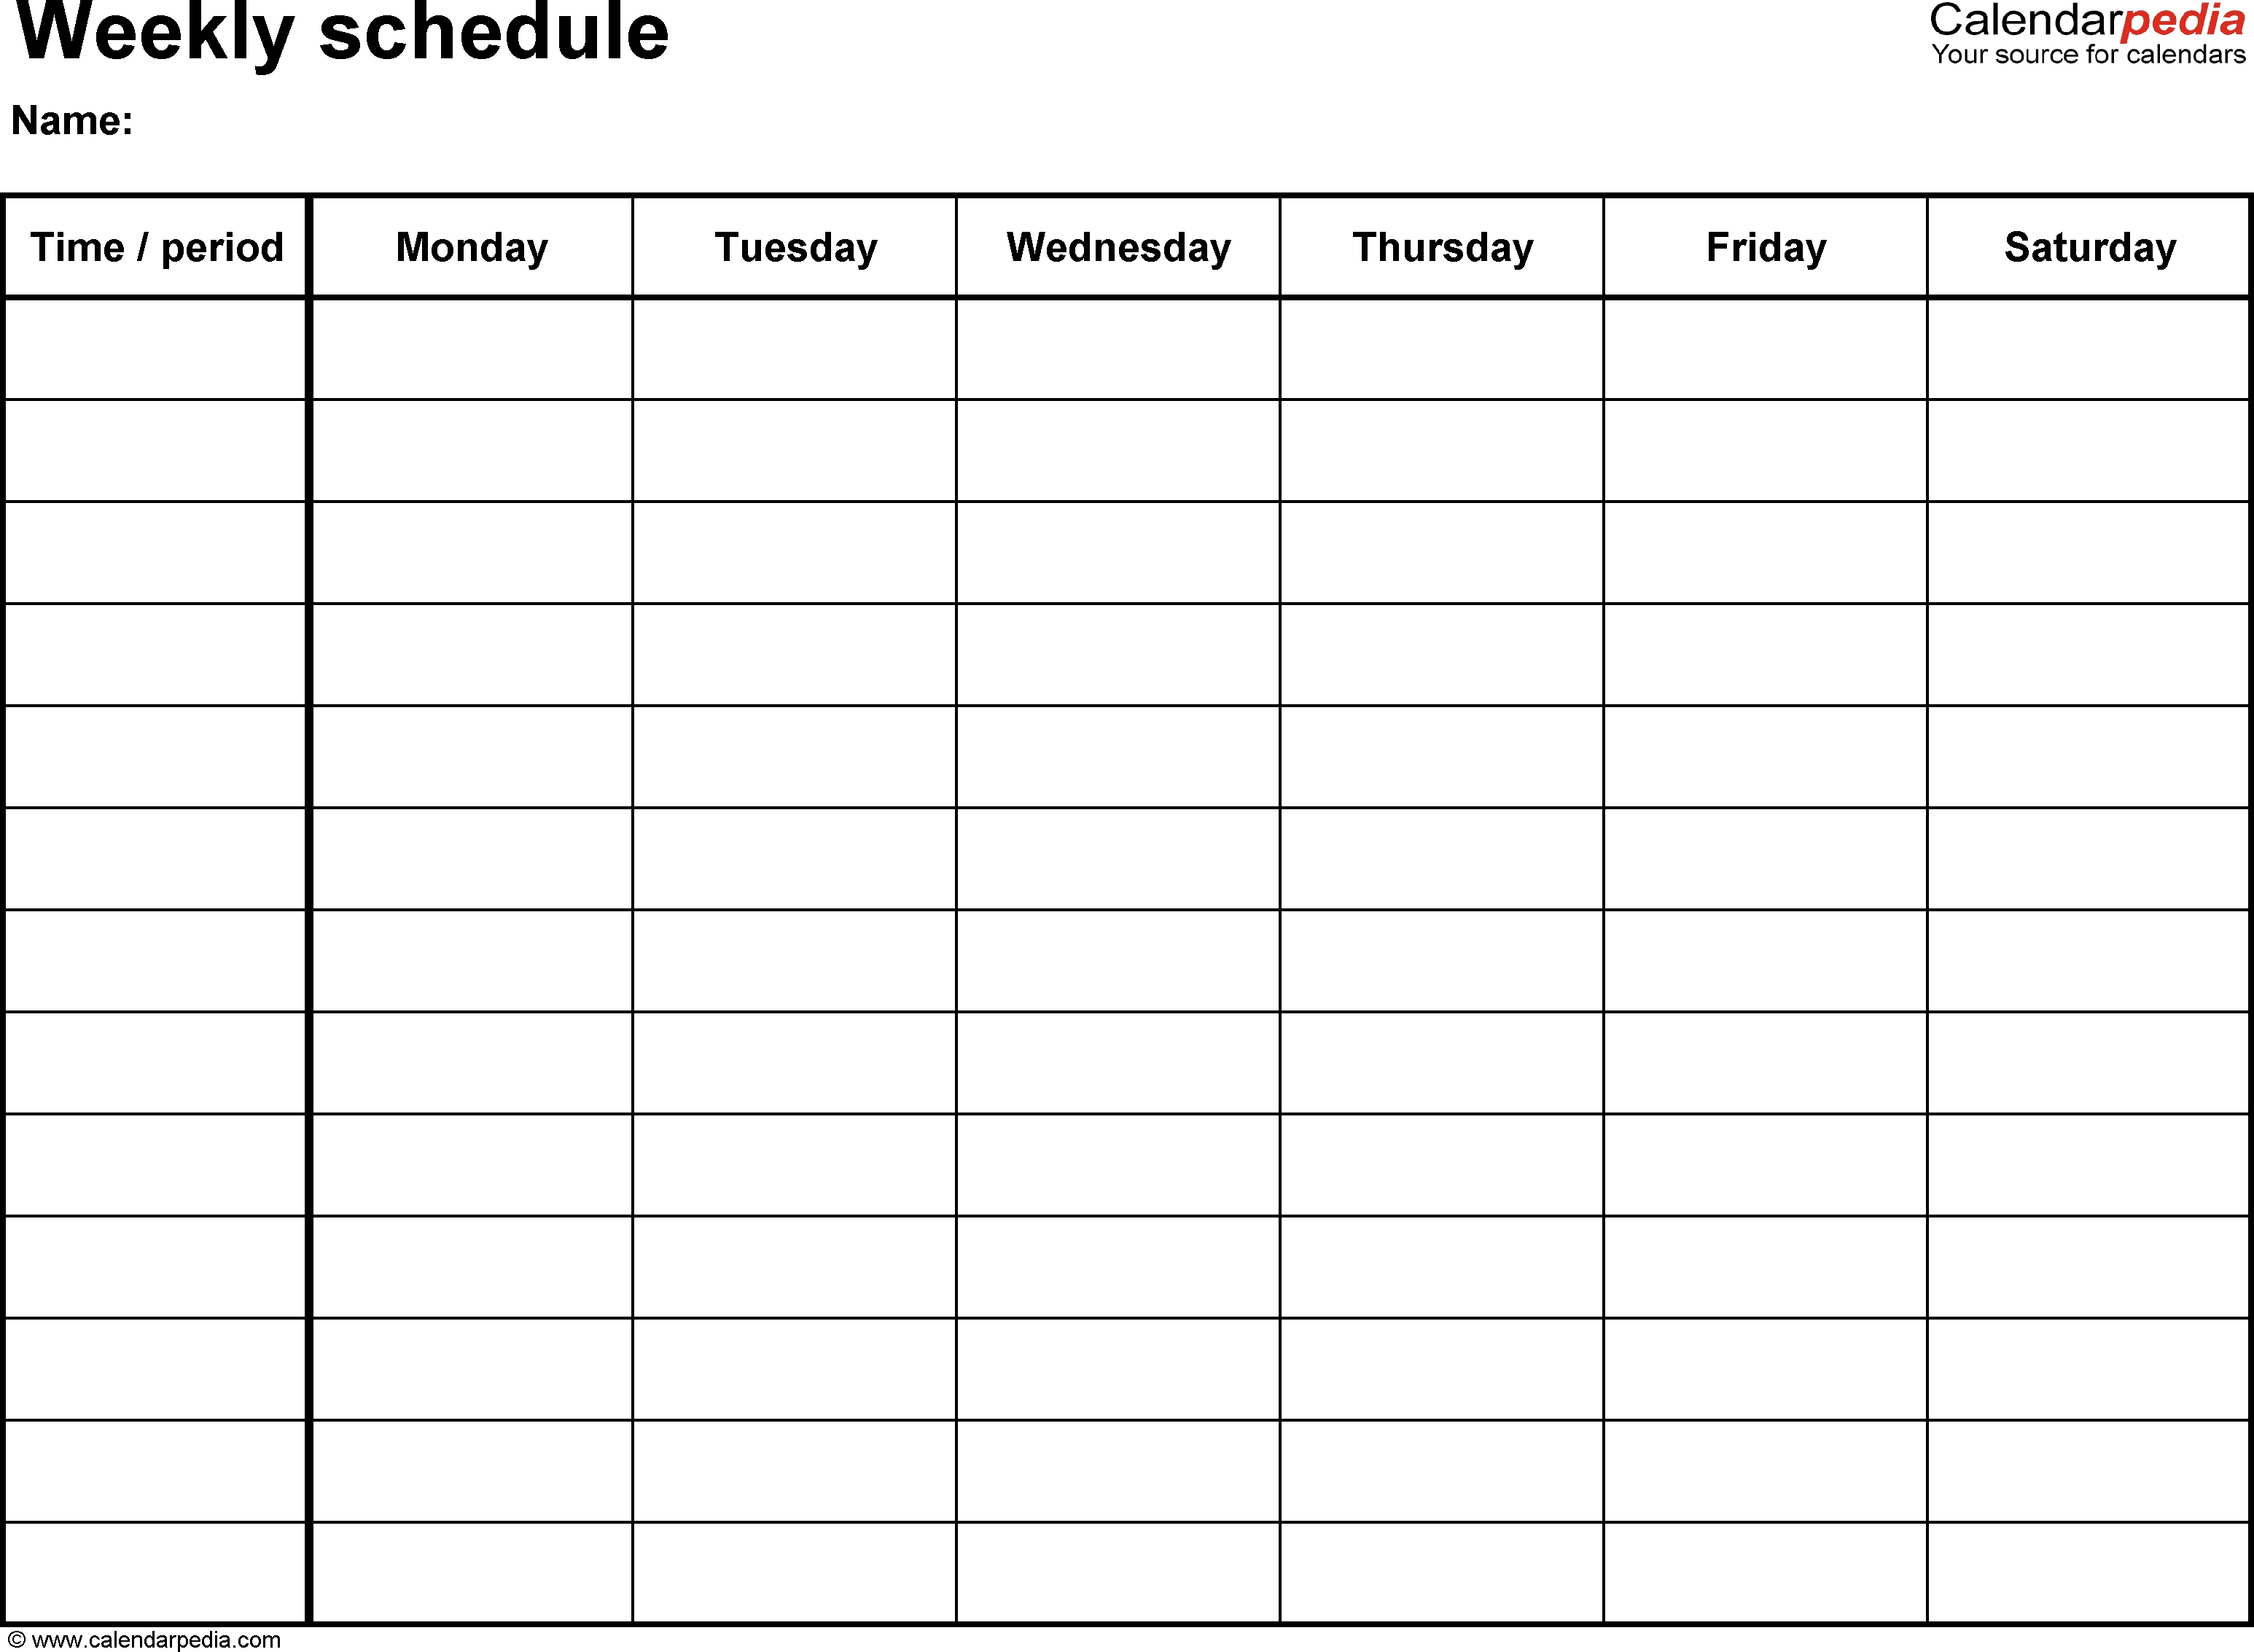 Free Weekly Schedule Templates For Word - 18 Templates regarding Monday Though Friday Timed Schedule